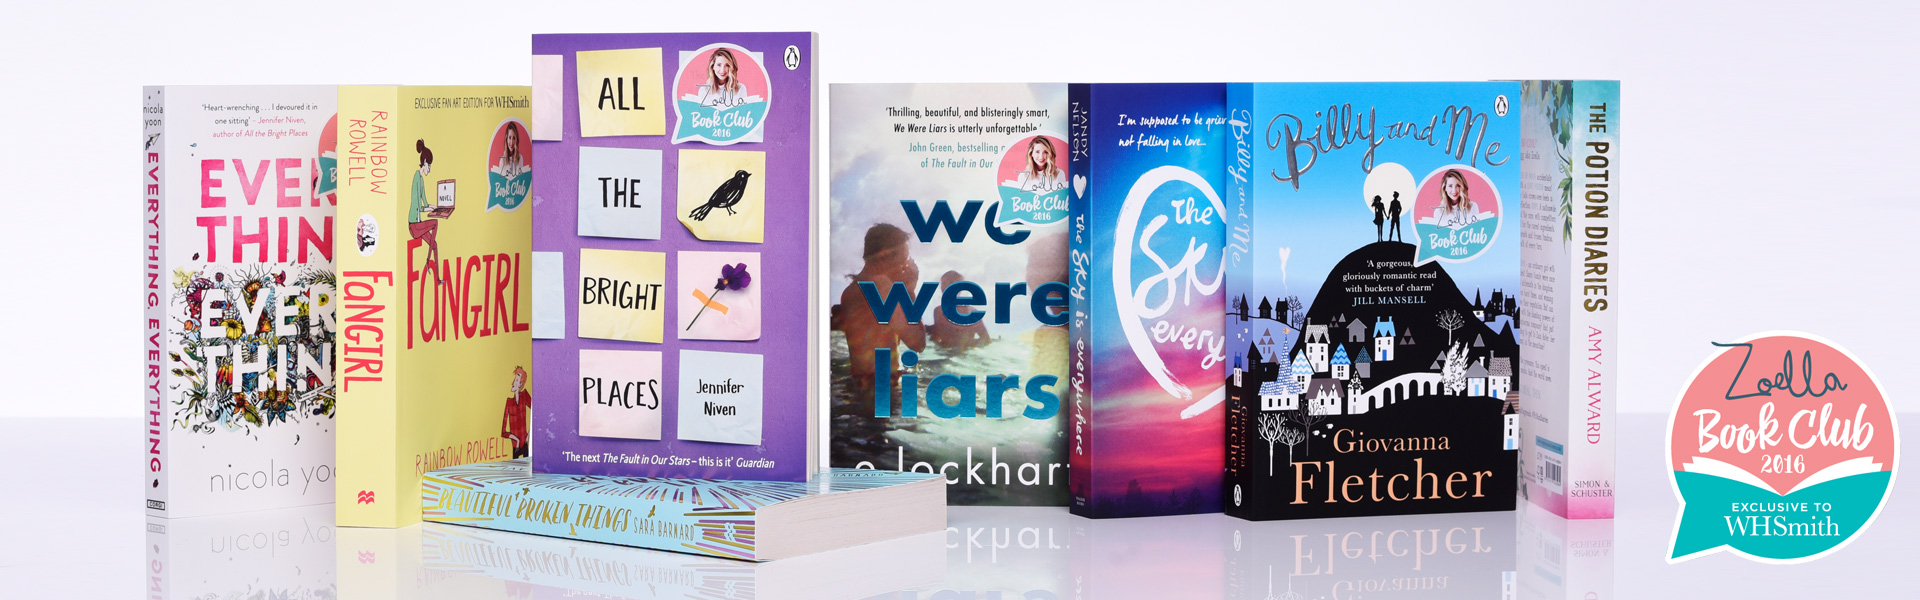 Vote Now For Your Zoella Book Club 2016 WINNER!